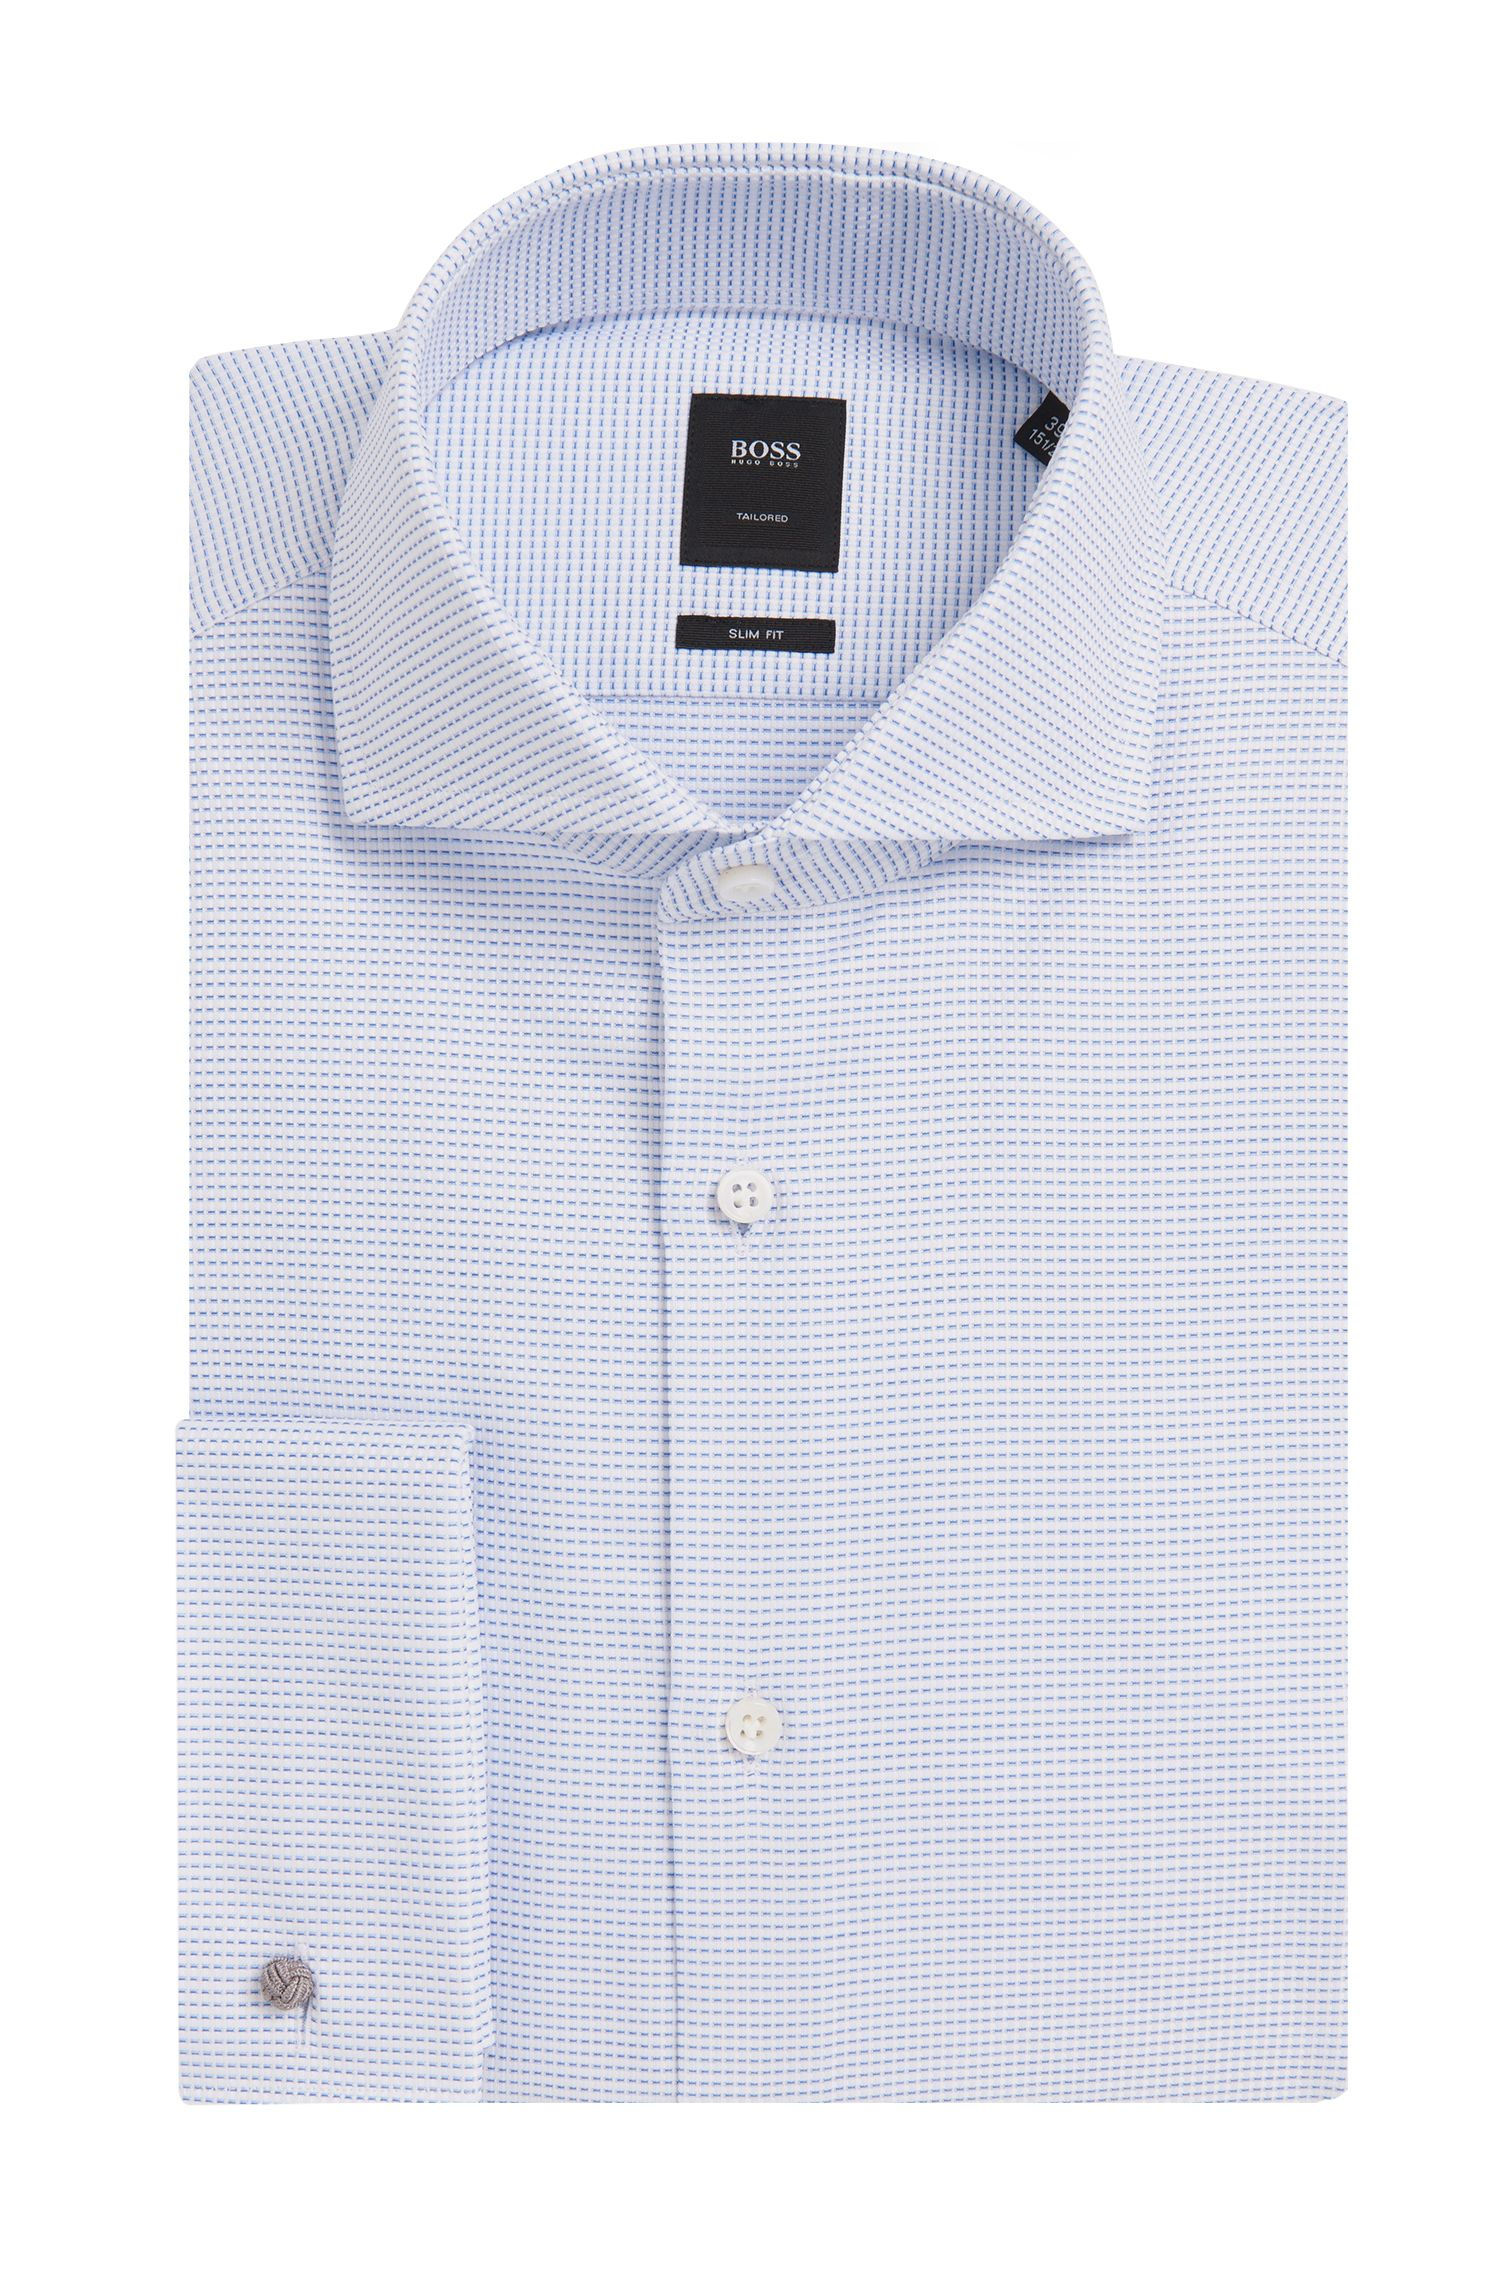 'T-Yacob' | Slim Fit, Italian Cotton French Cuff Dress Shirt